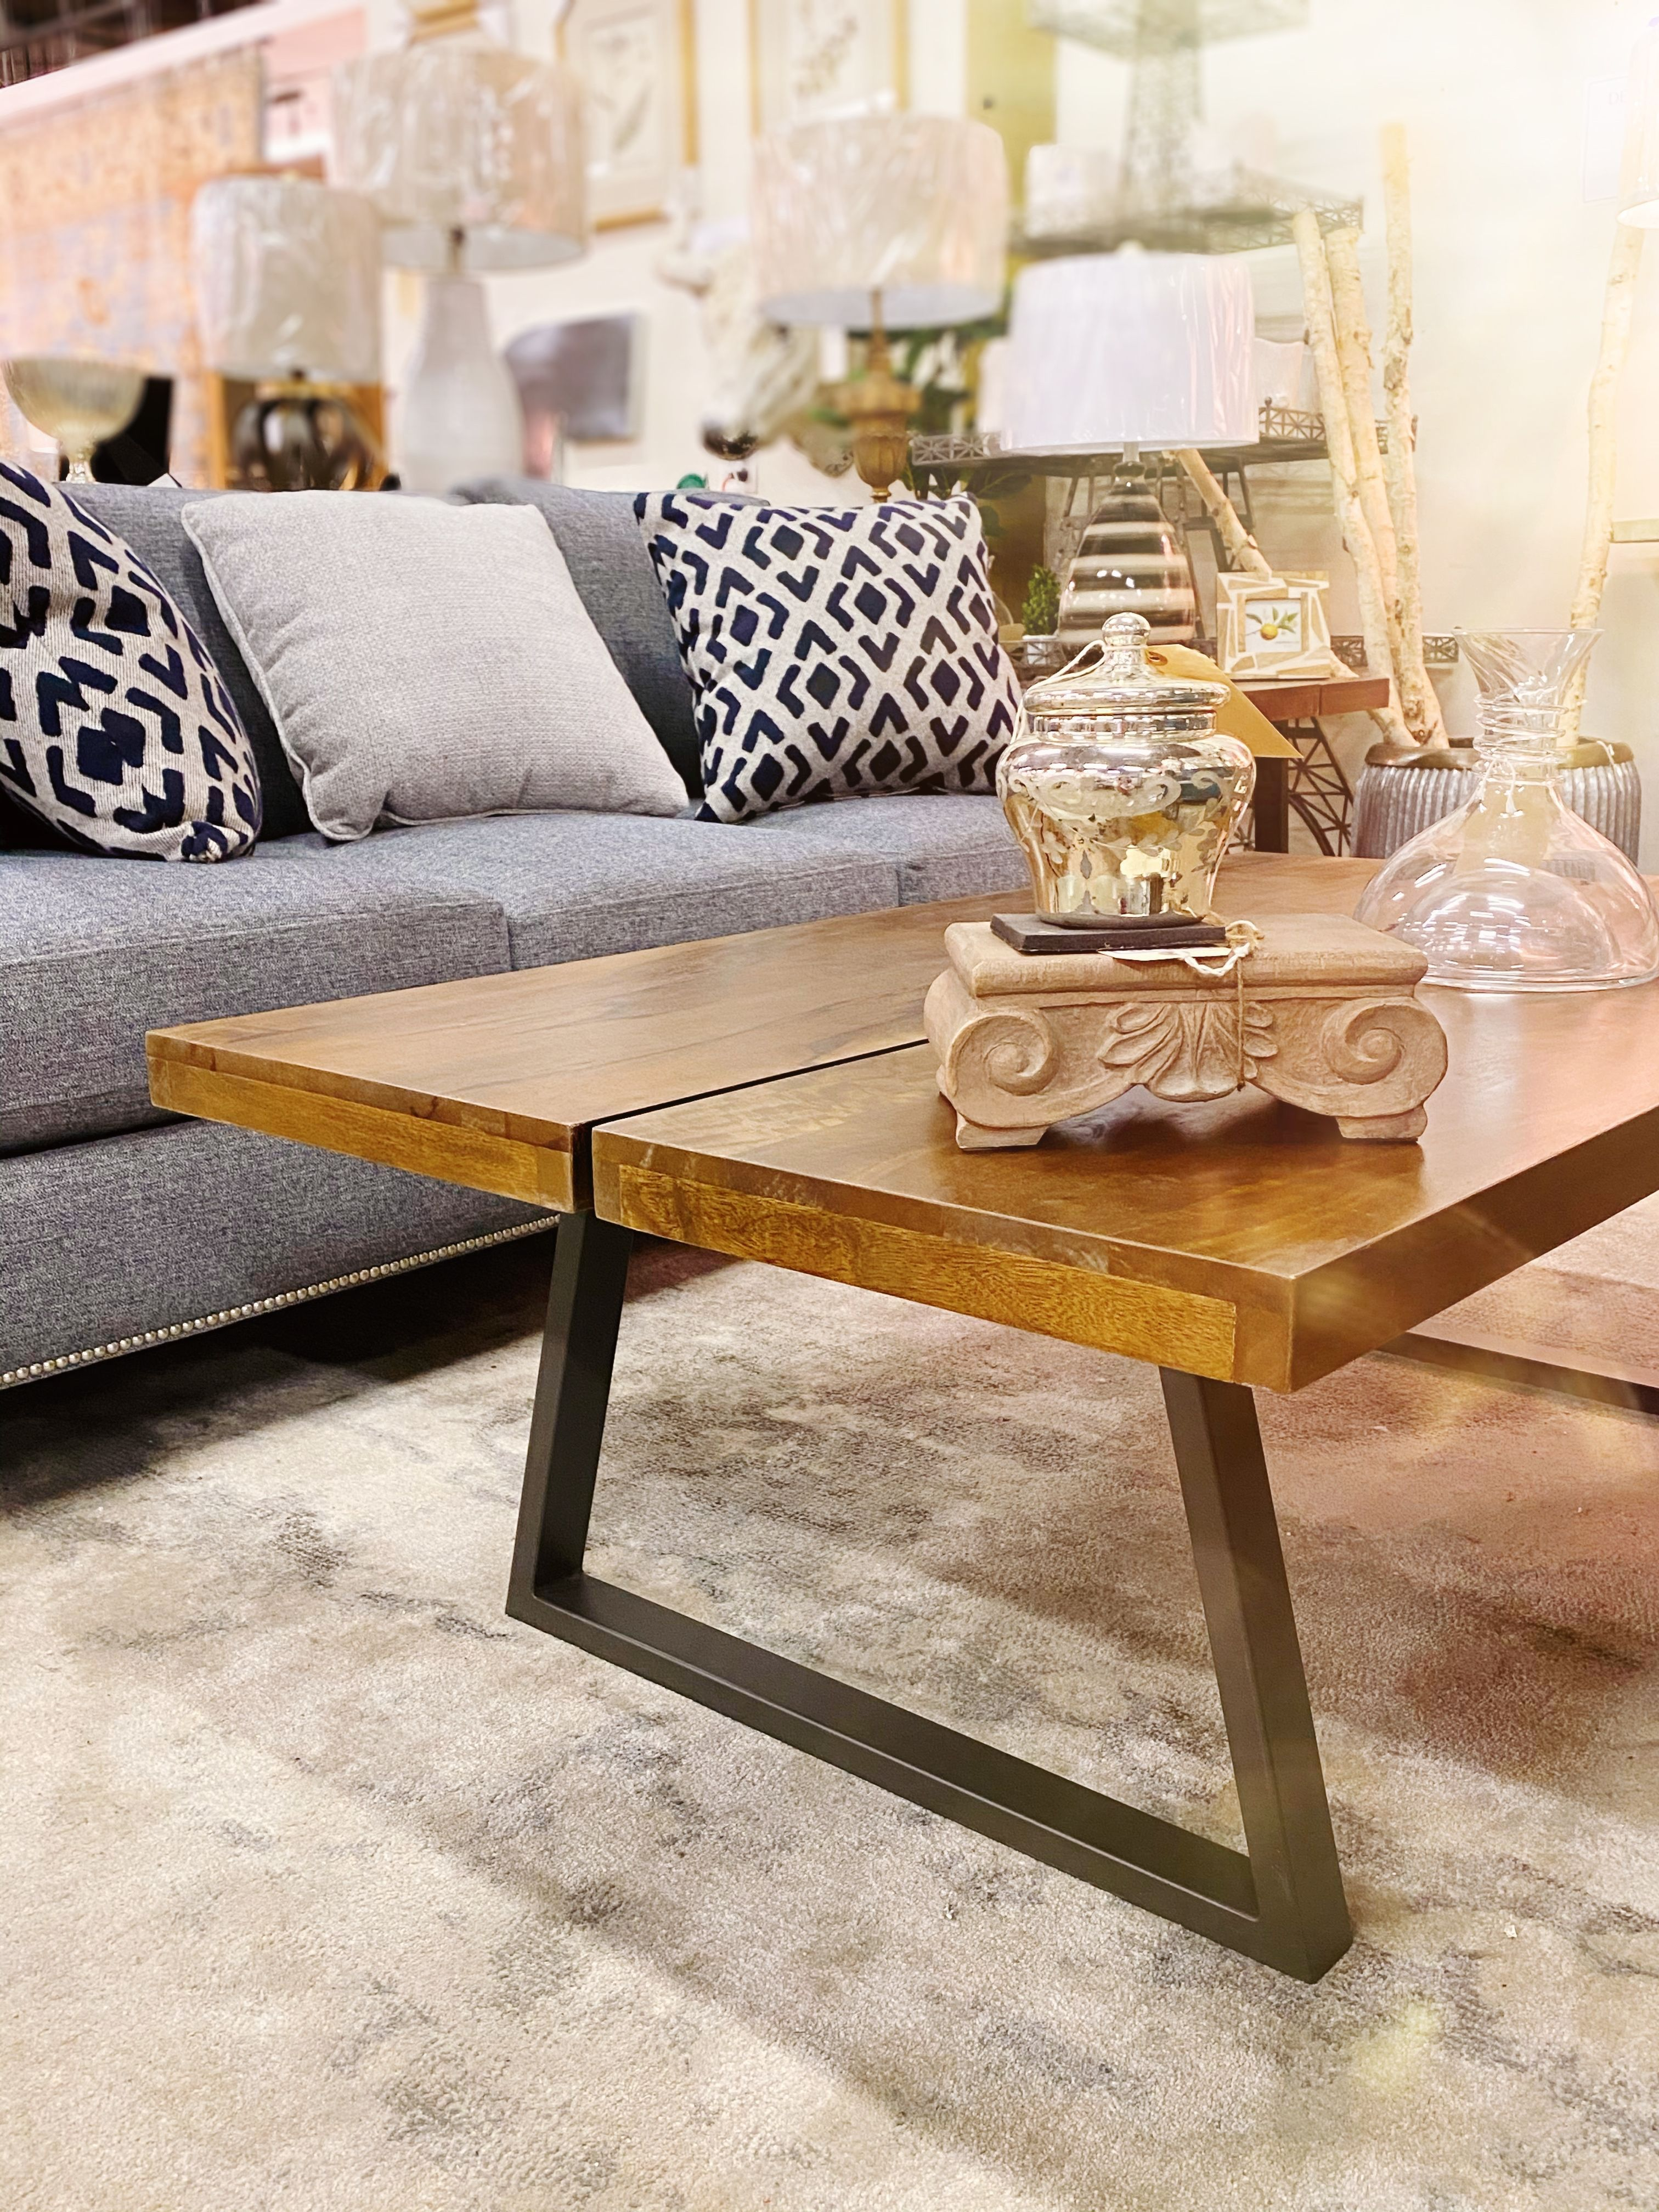 Mid Century Modern Coffee Table With Classic Details In 2020 Coffee Table Mid Century Modern Coffee Table Iron Coffee Table [ 4032 x 3024 Pixel ]